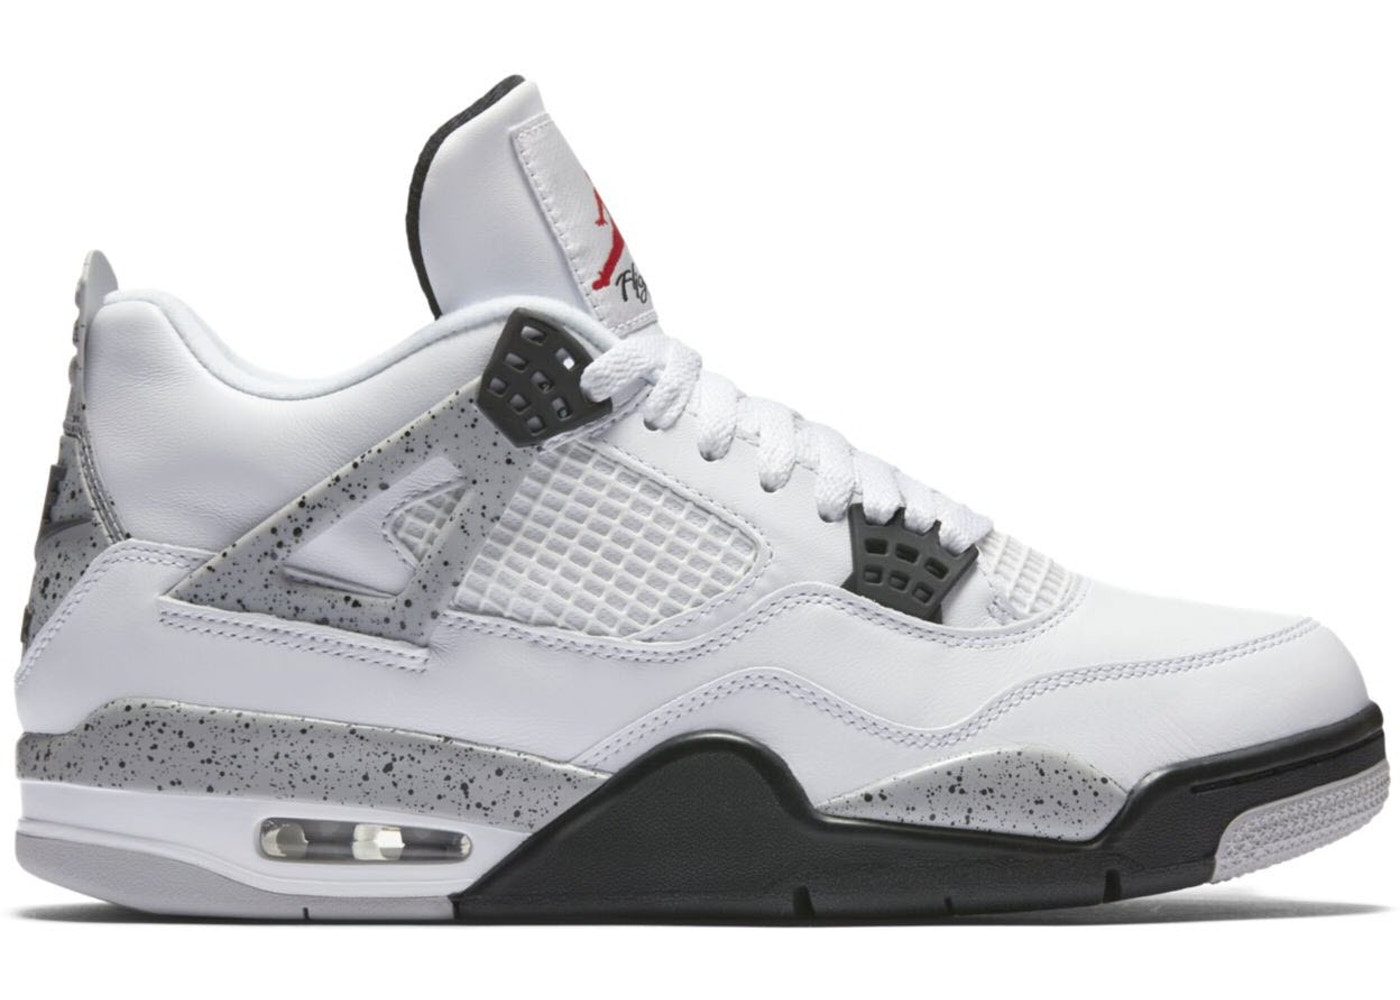 bdcf1281a9a0f4 Buy Air Jordan 4 Shoes   Deadstock Sneakers